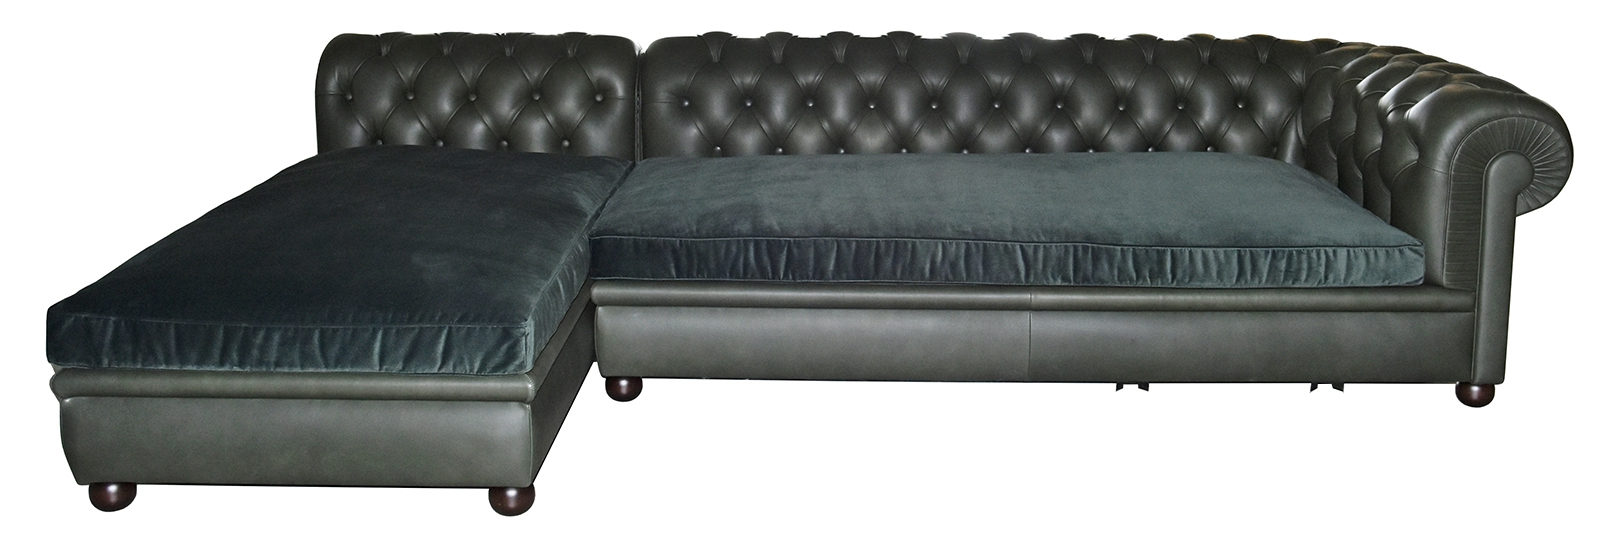 Sofas Chester Chesterfield Sofa Bauhaus Italy Chester